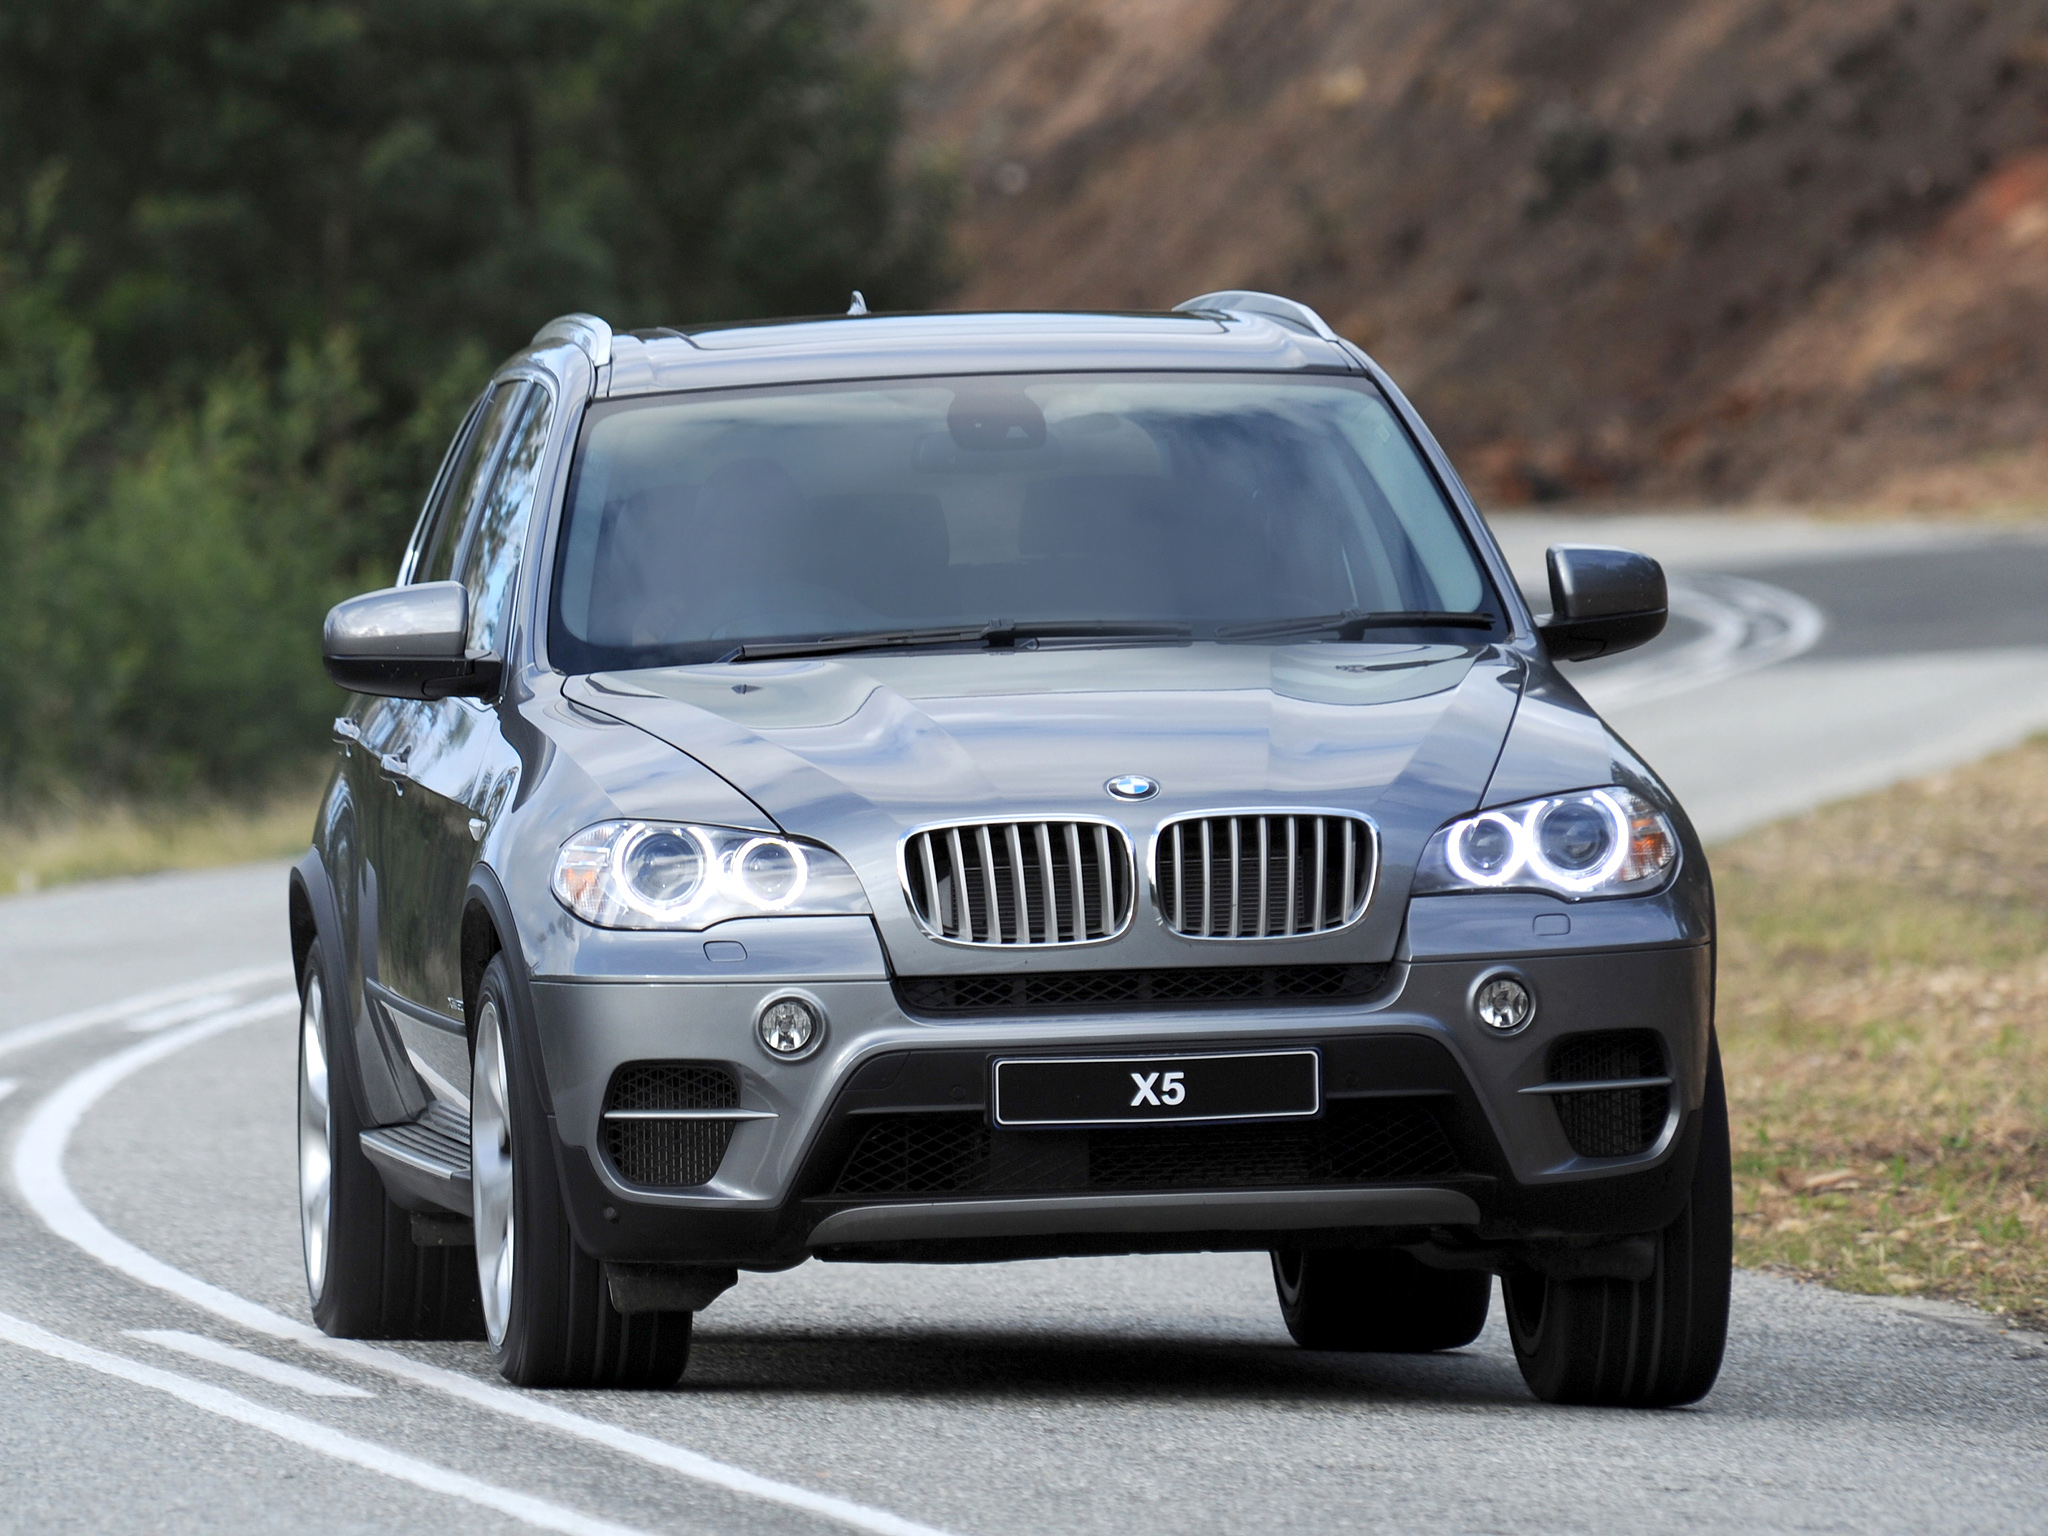 BMW X5 xDrive50i 2010 photo - 1